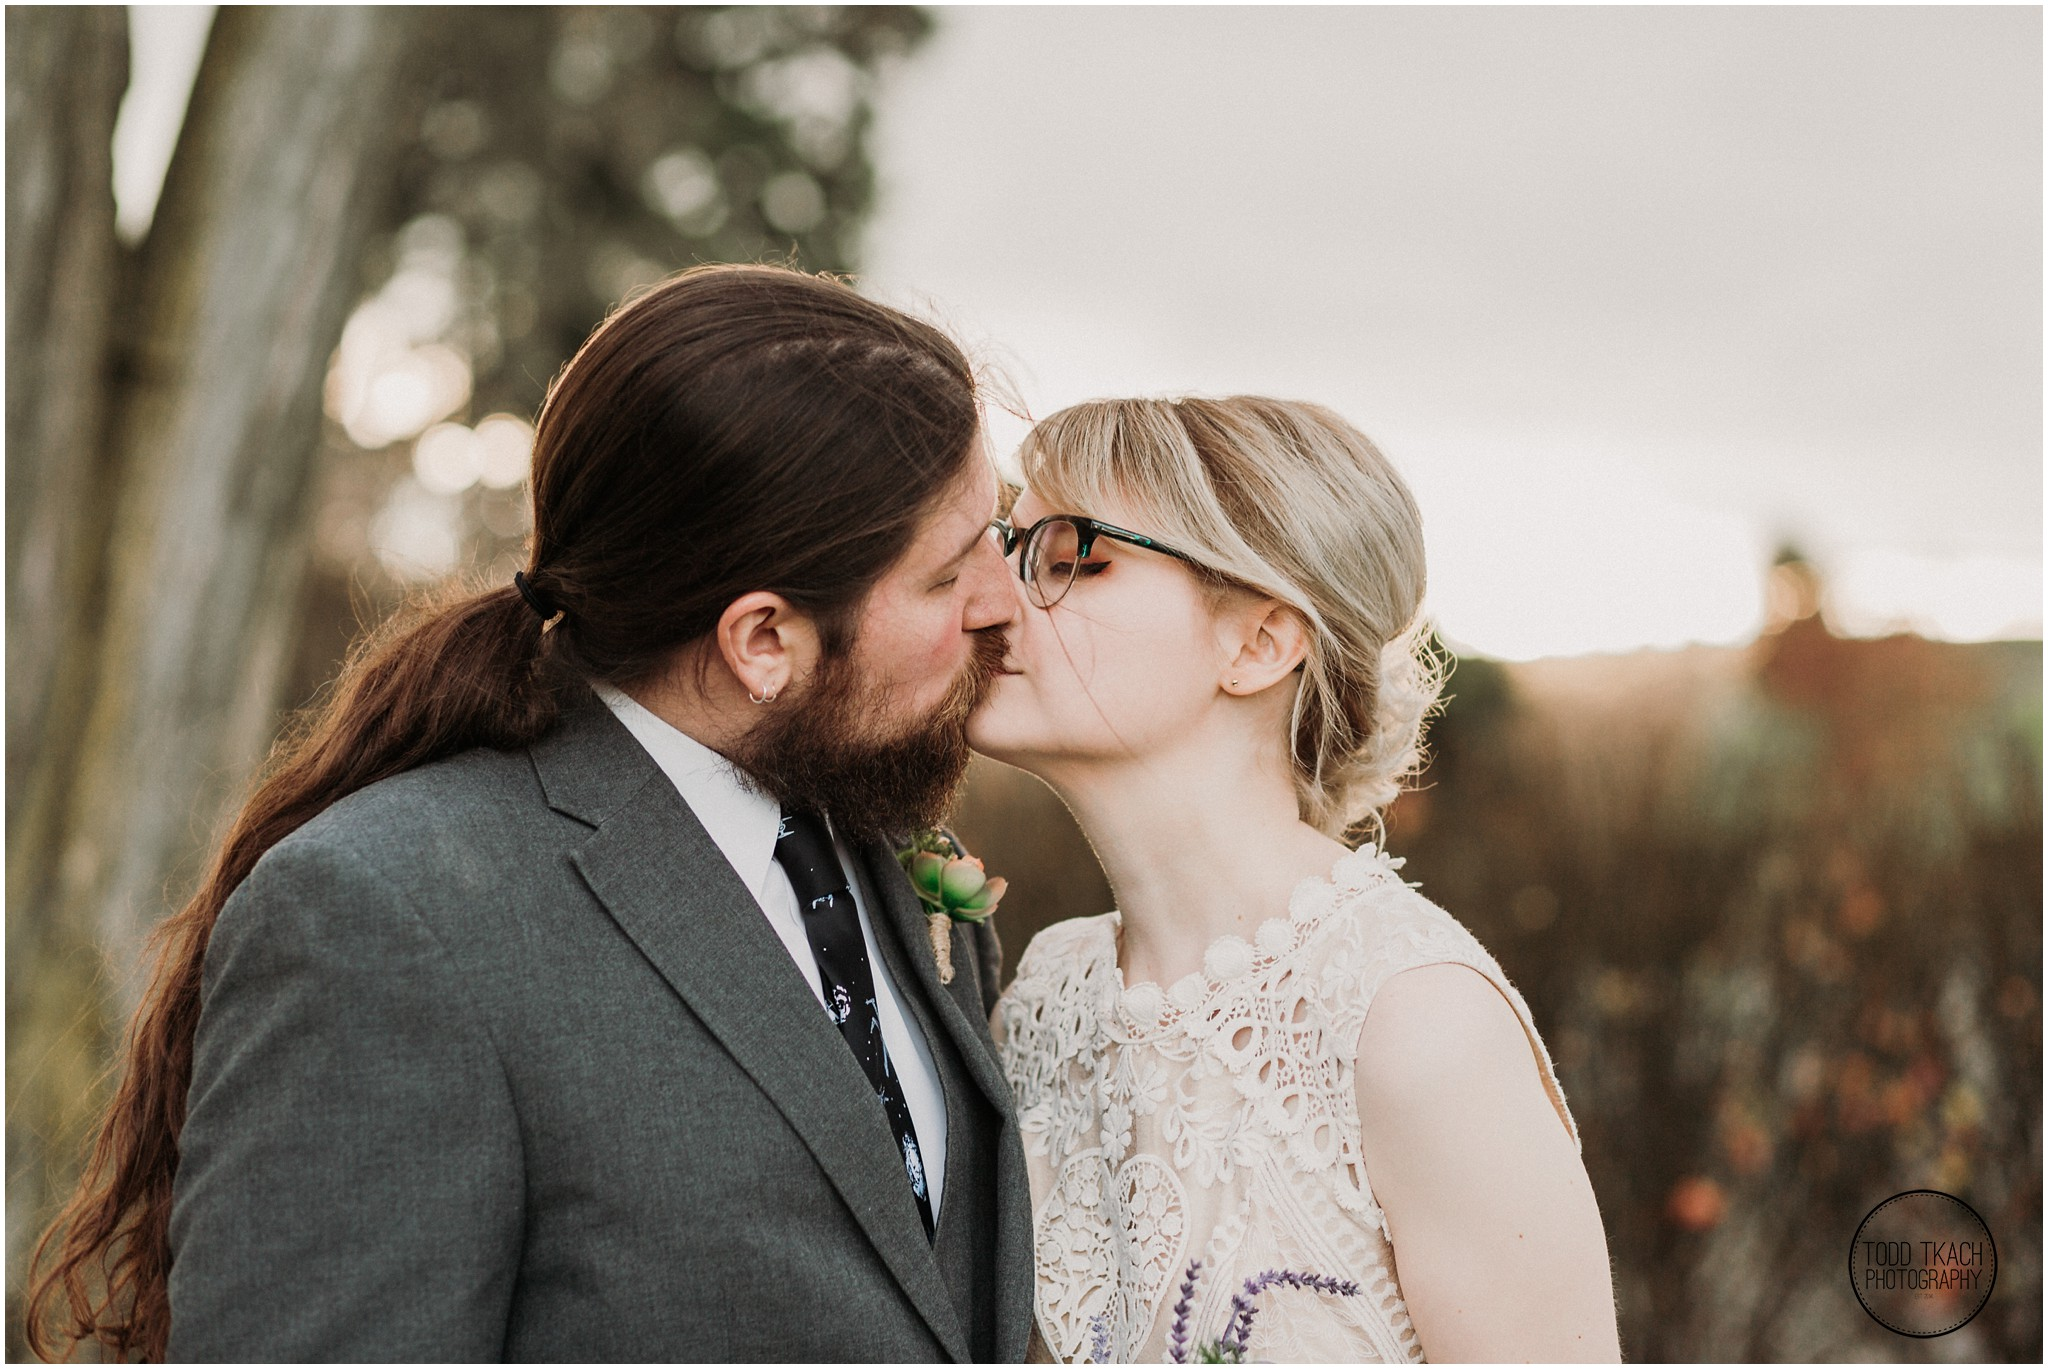 Alyse & Michael Wedding - Sunlit Kiss